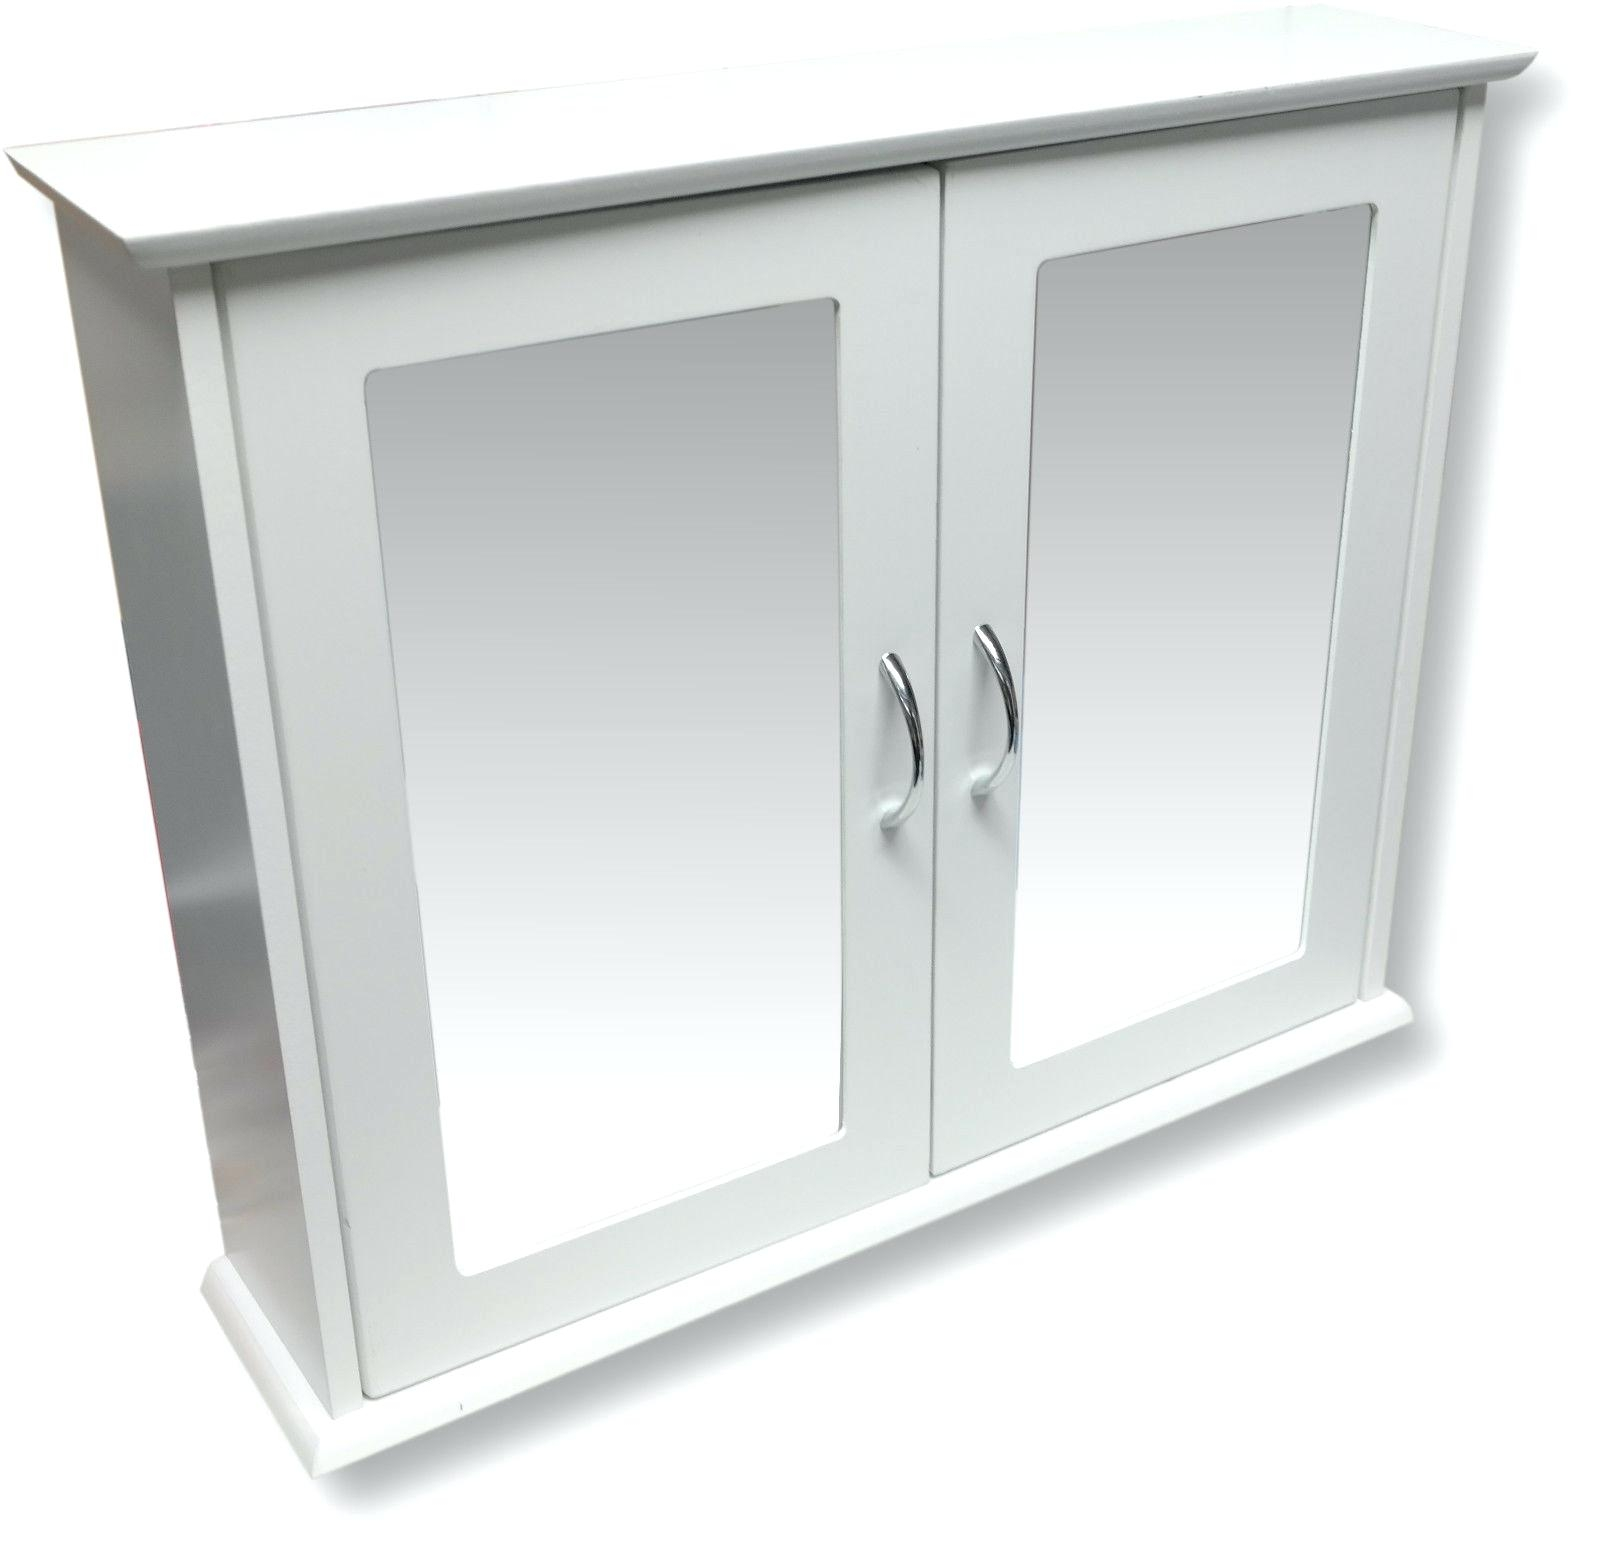 Permalink to Free Standing Bathroom Cabinets Argos